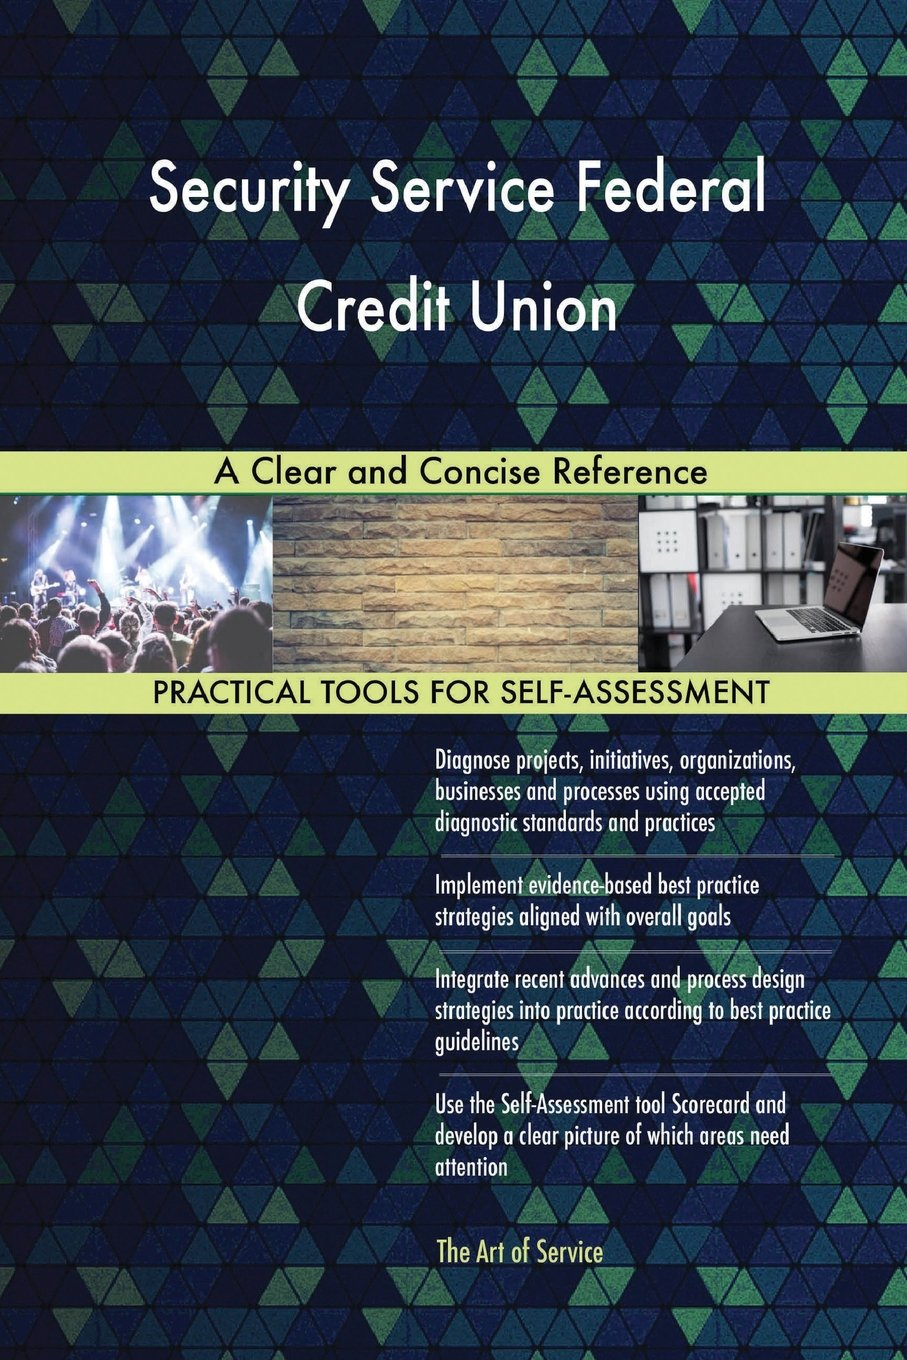 Buy Security Service Federal Credit Union A Clear And Concise Reference Book Online At Low Prices In India Security Service Federal Credit Union A Clear And Concise Reference Reviews Ratings